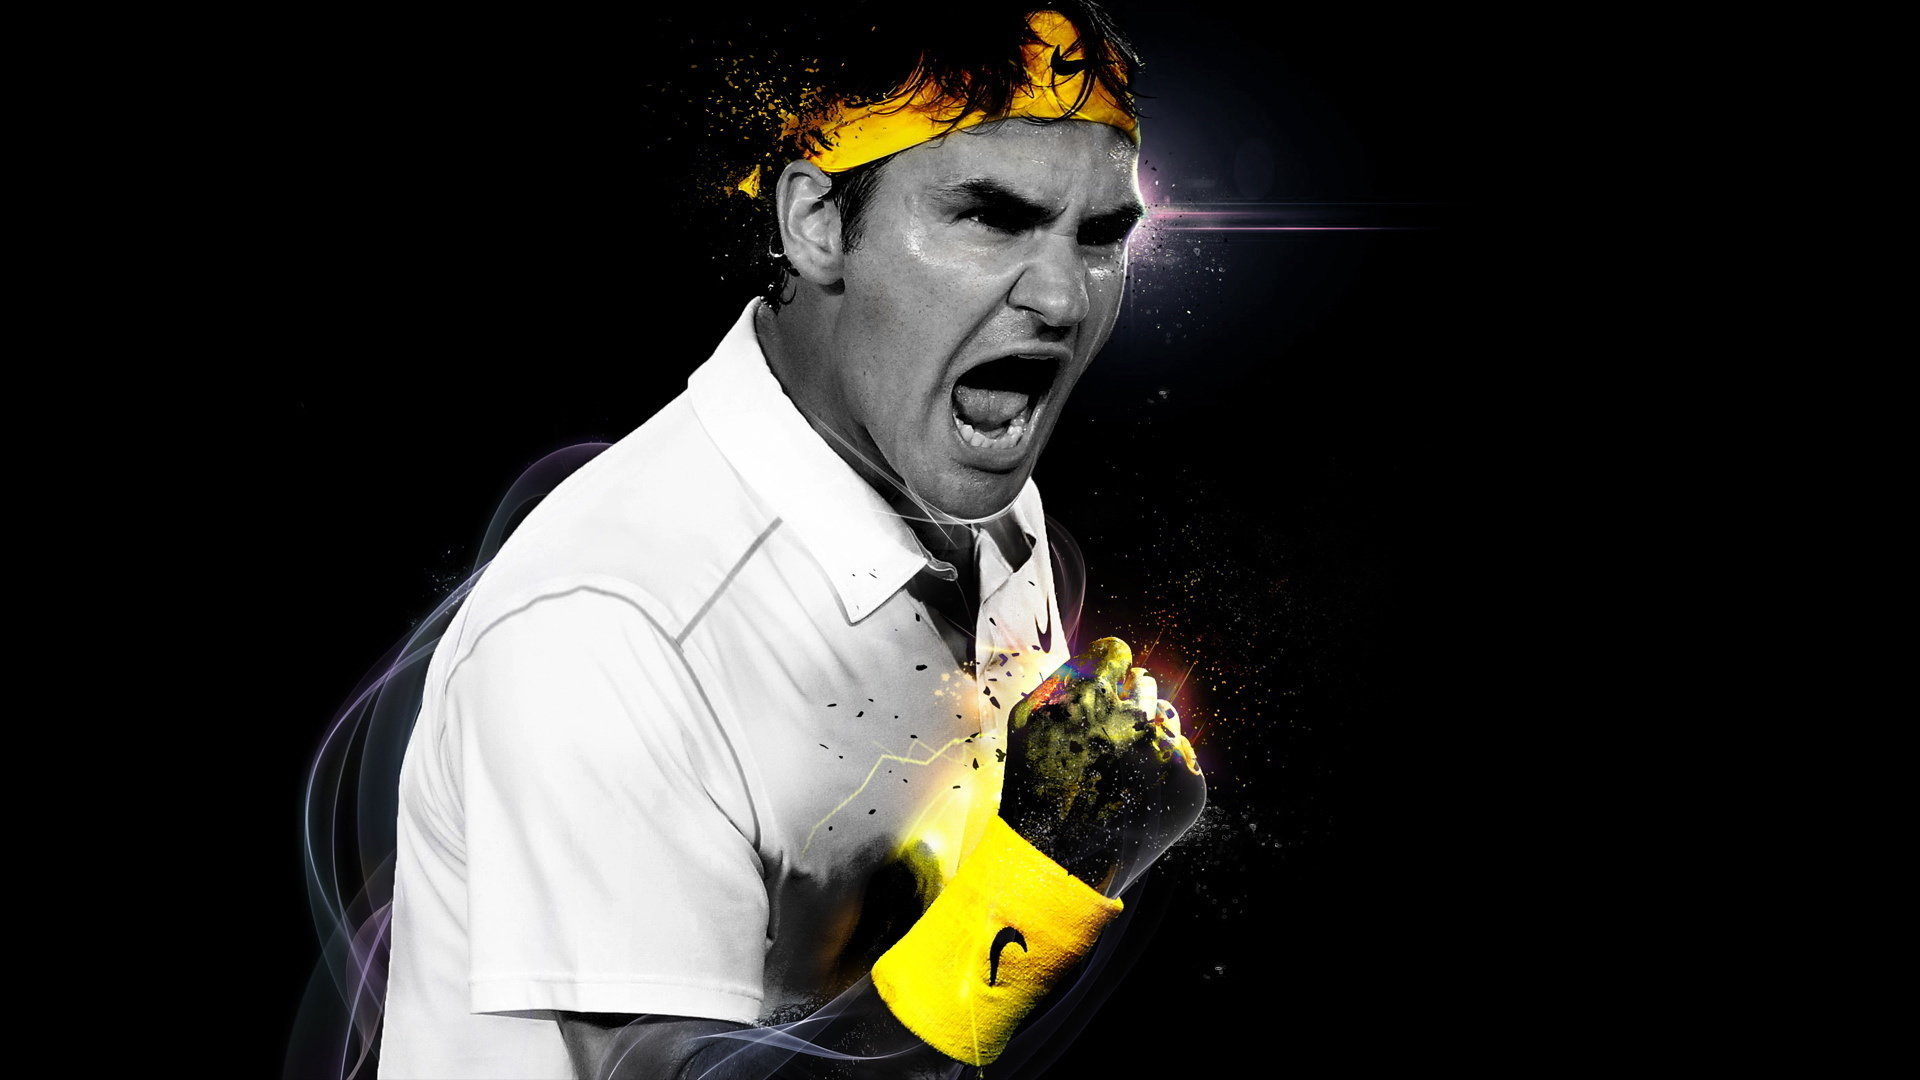 File Roger Federer Wallpapers B7G1SFZjpg   4USkY 1920x1080